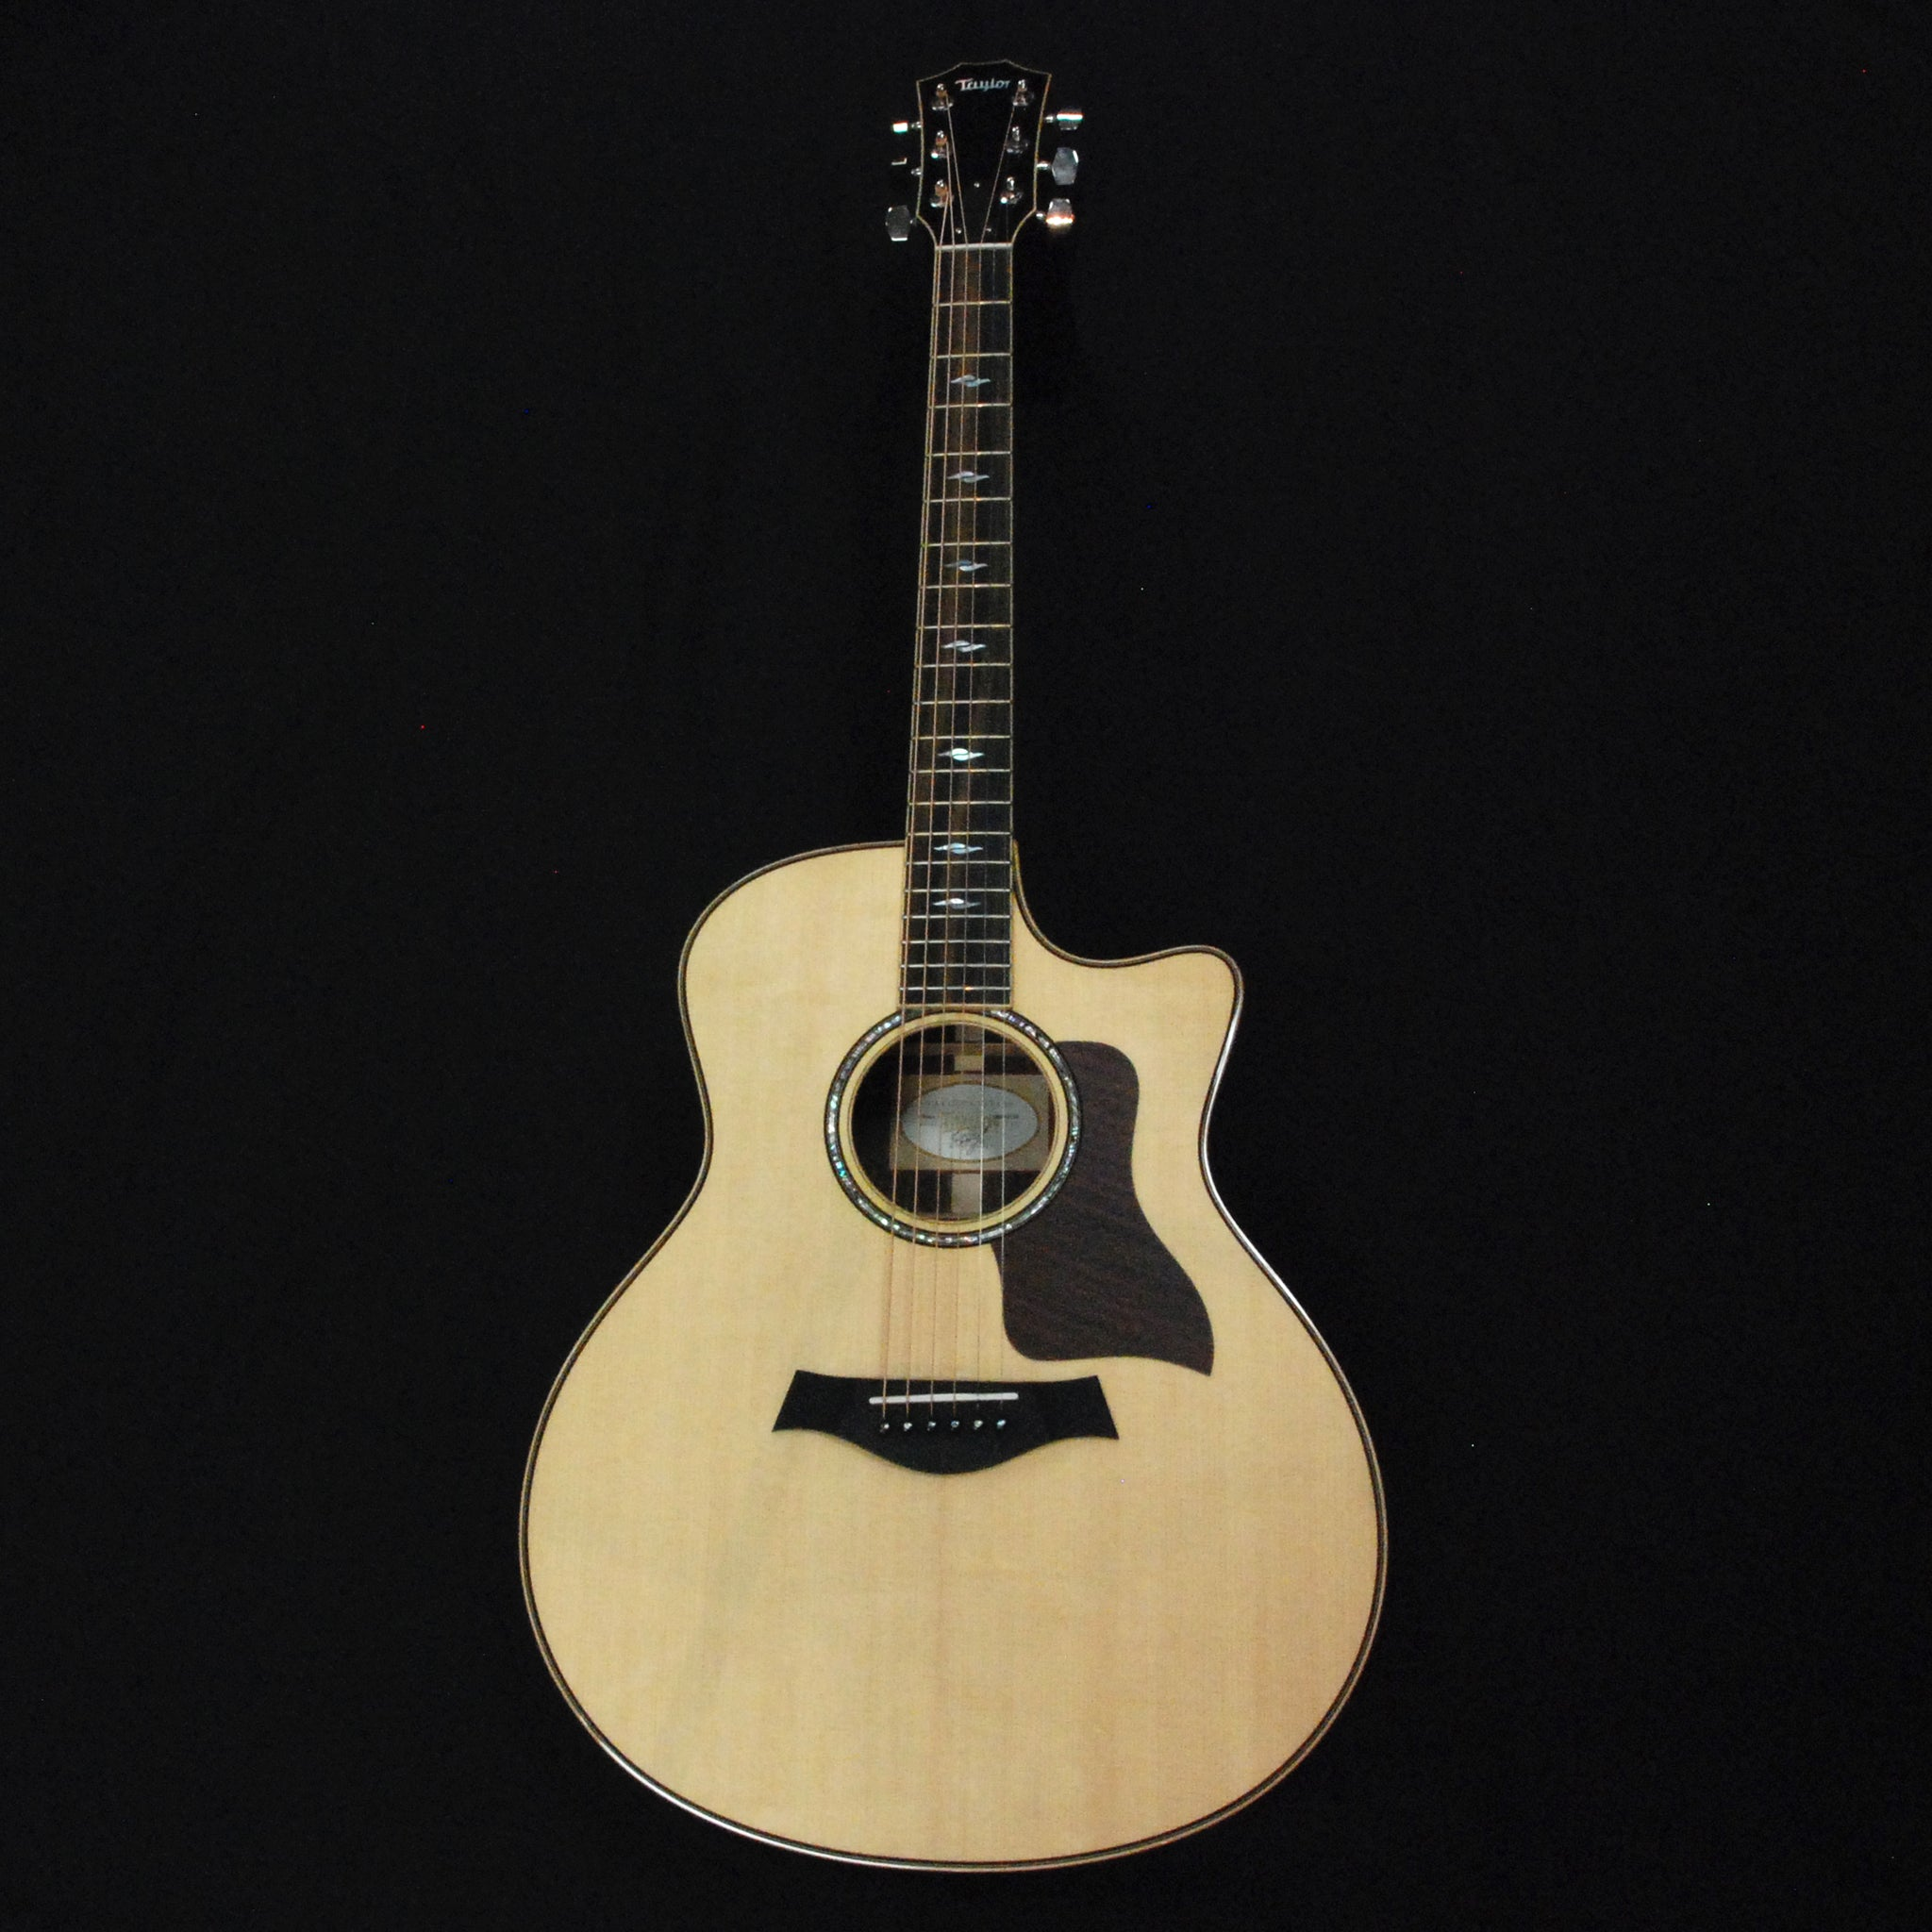 Shop online for Taylor 816ce Grand Symphony Cutaway Solid Wood Acoustic/Electric Guitar Natural today.  Now available for purchase from Midlothian Music of Orland Park, Illinois, USA